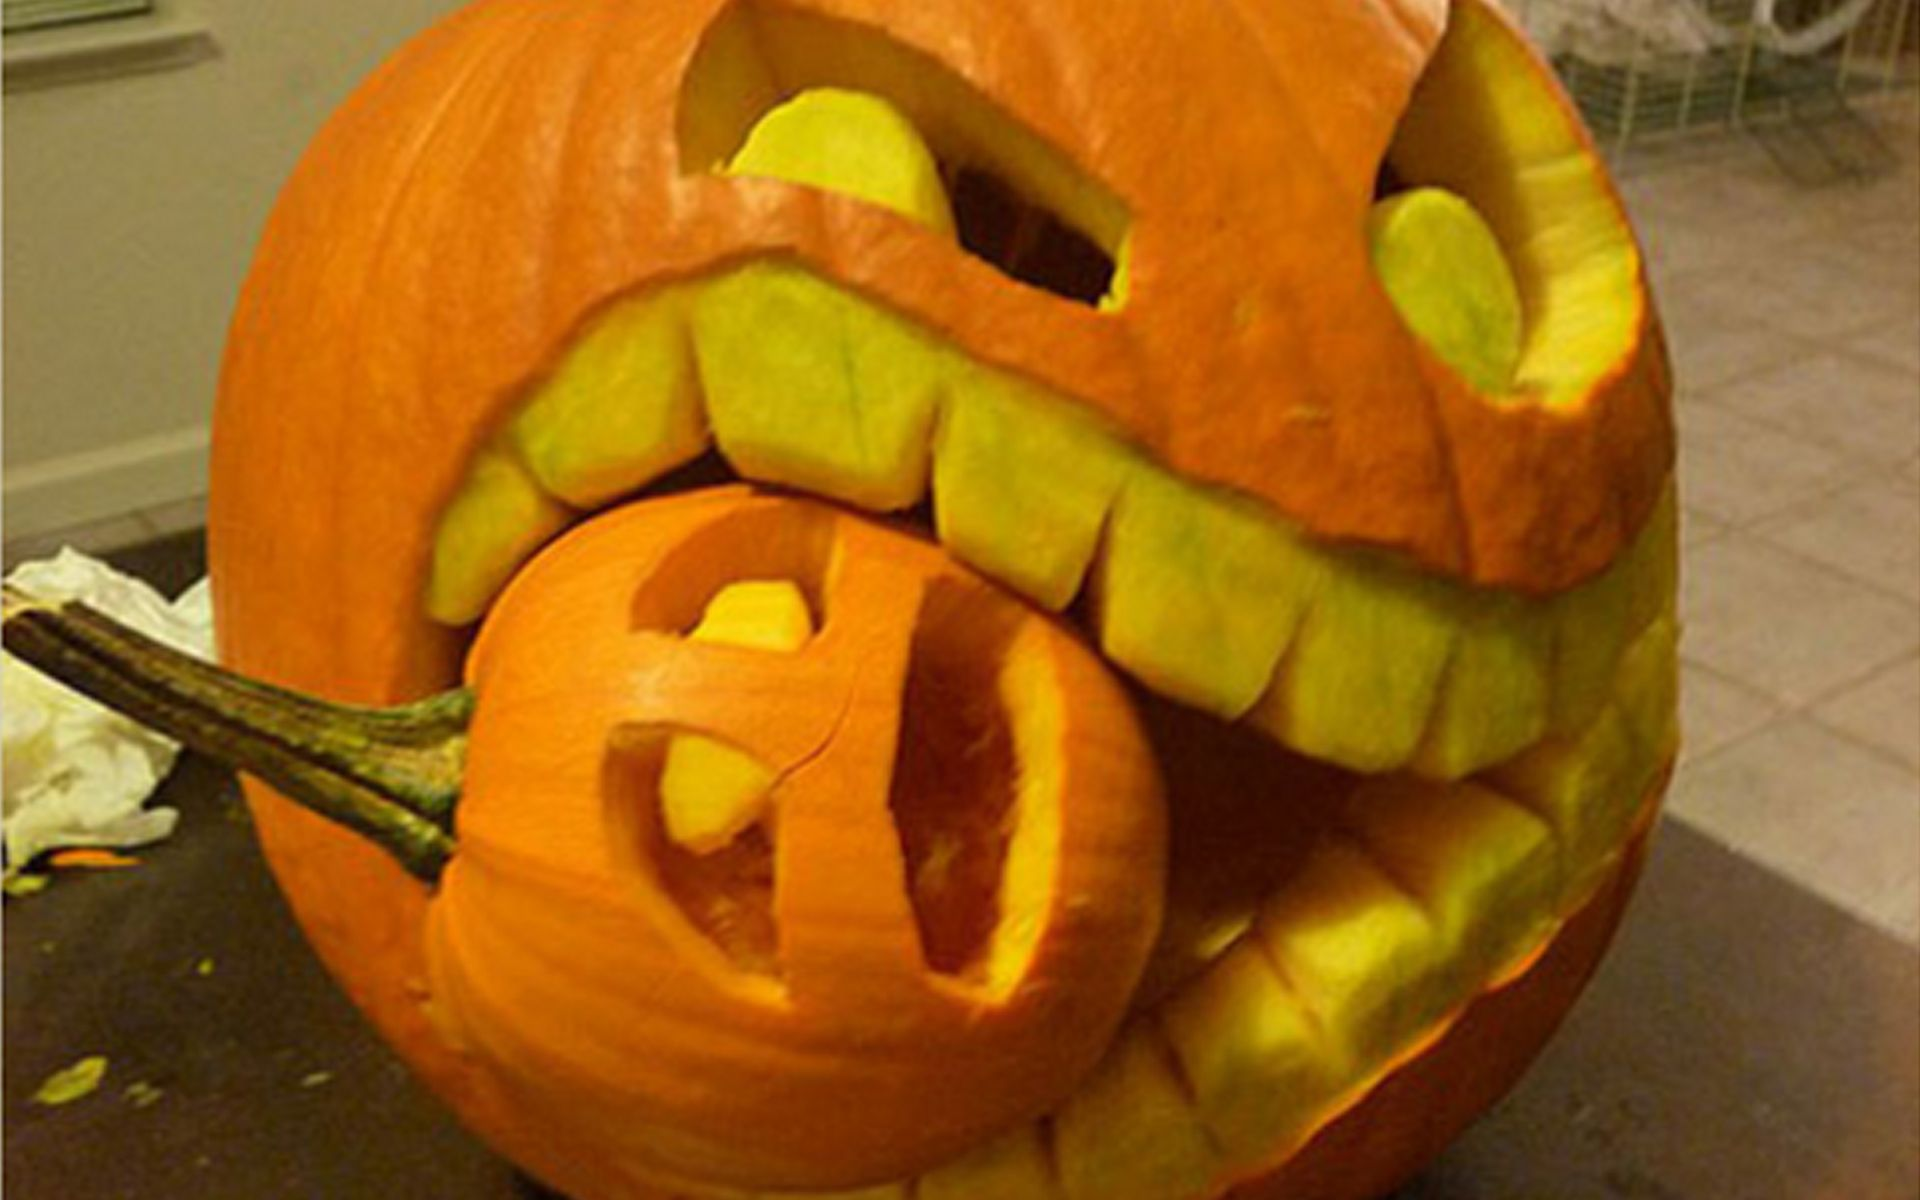 17 best images about pumpkin carving ideas on pinterest halloween pumpkins pumpkins and pumpkin carving templates - Cool Halloween Pumpkin Carvings